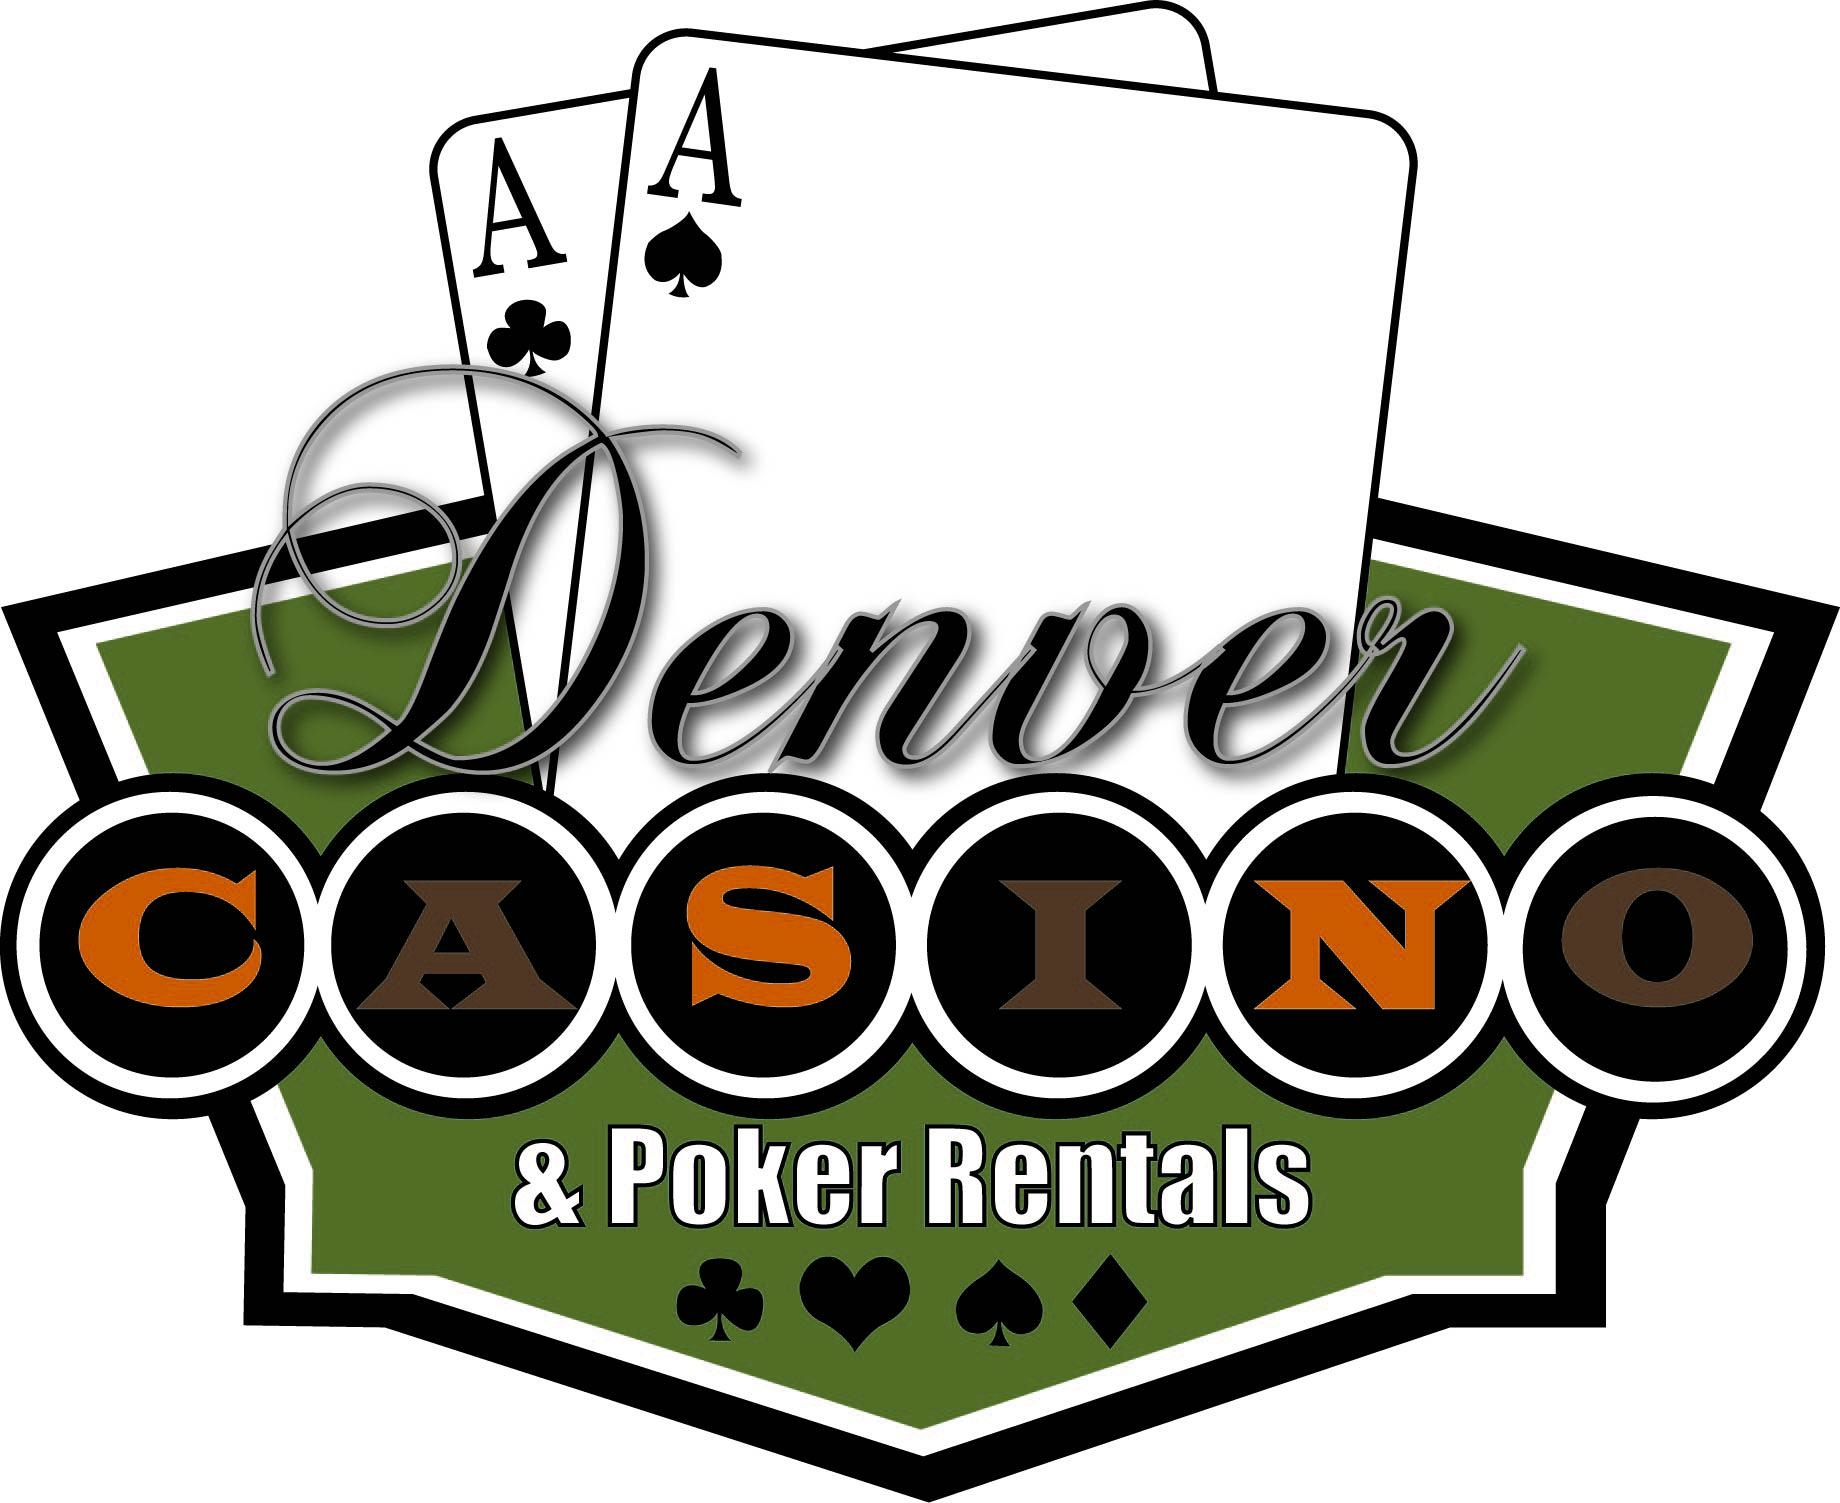 Denver Casino & Poker Rentals, Casino Party Planning